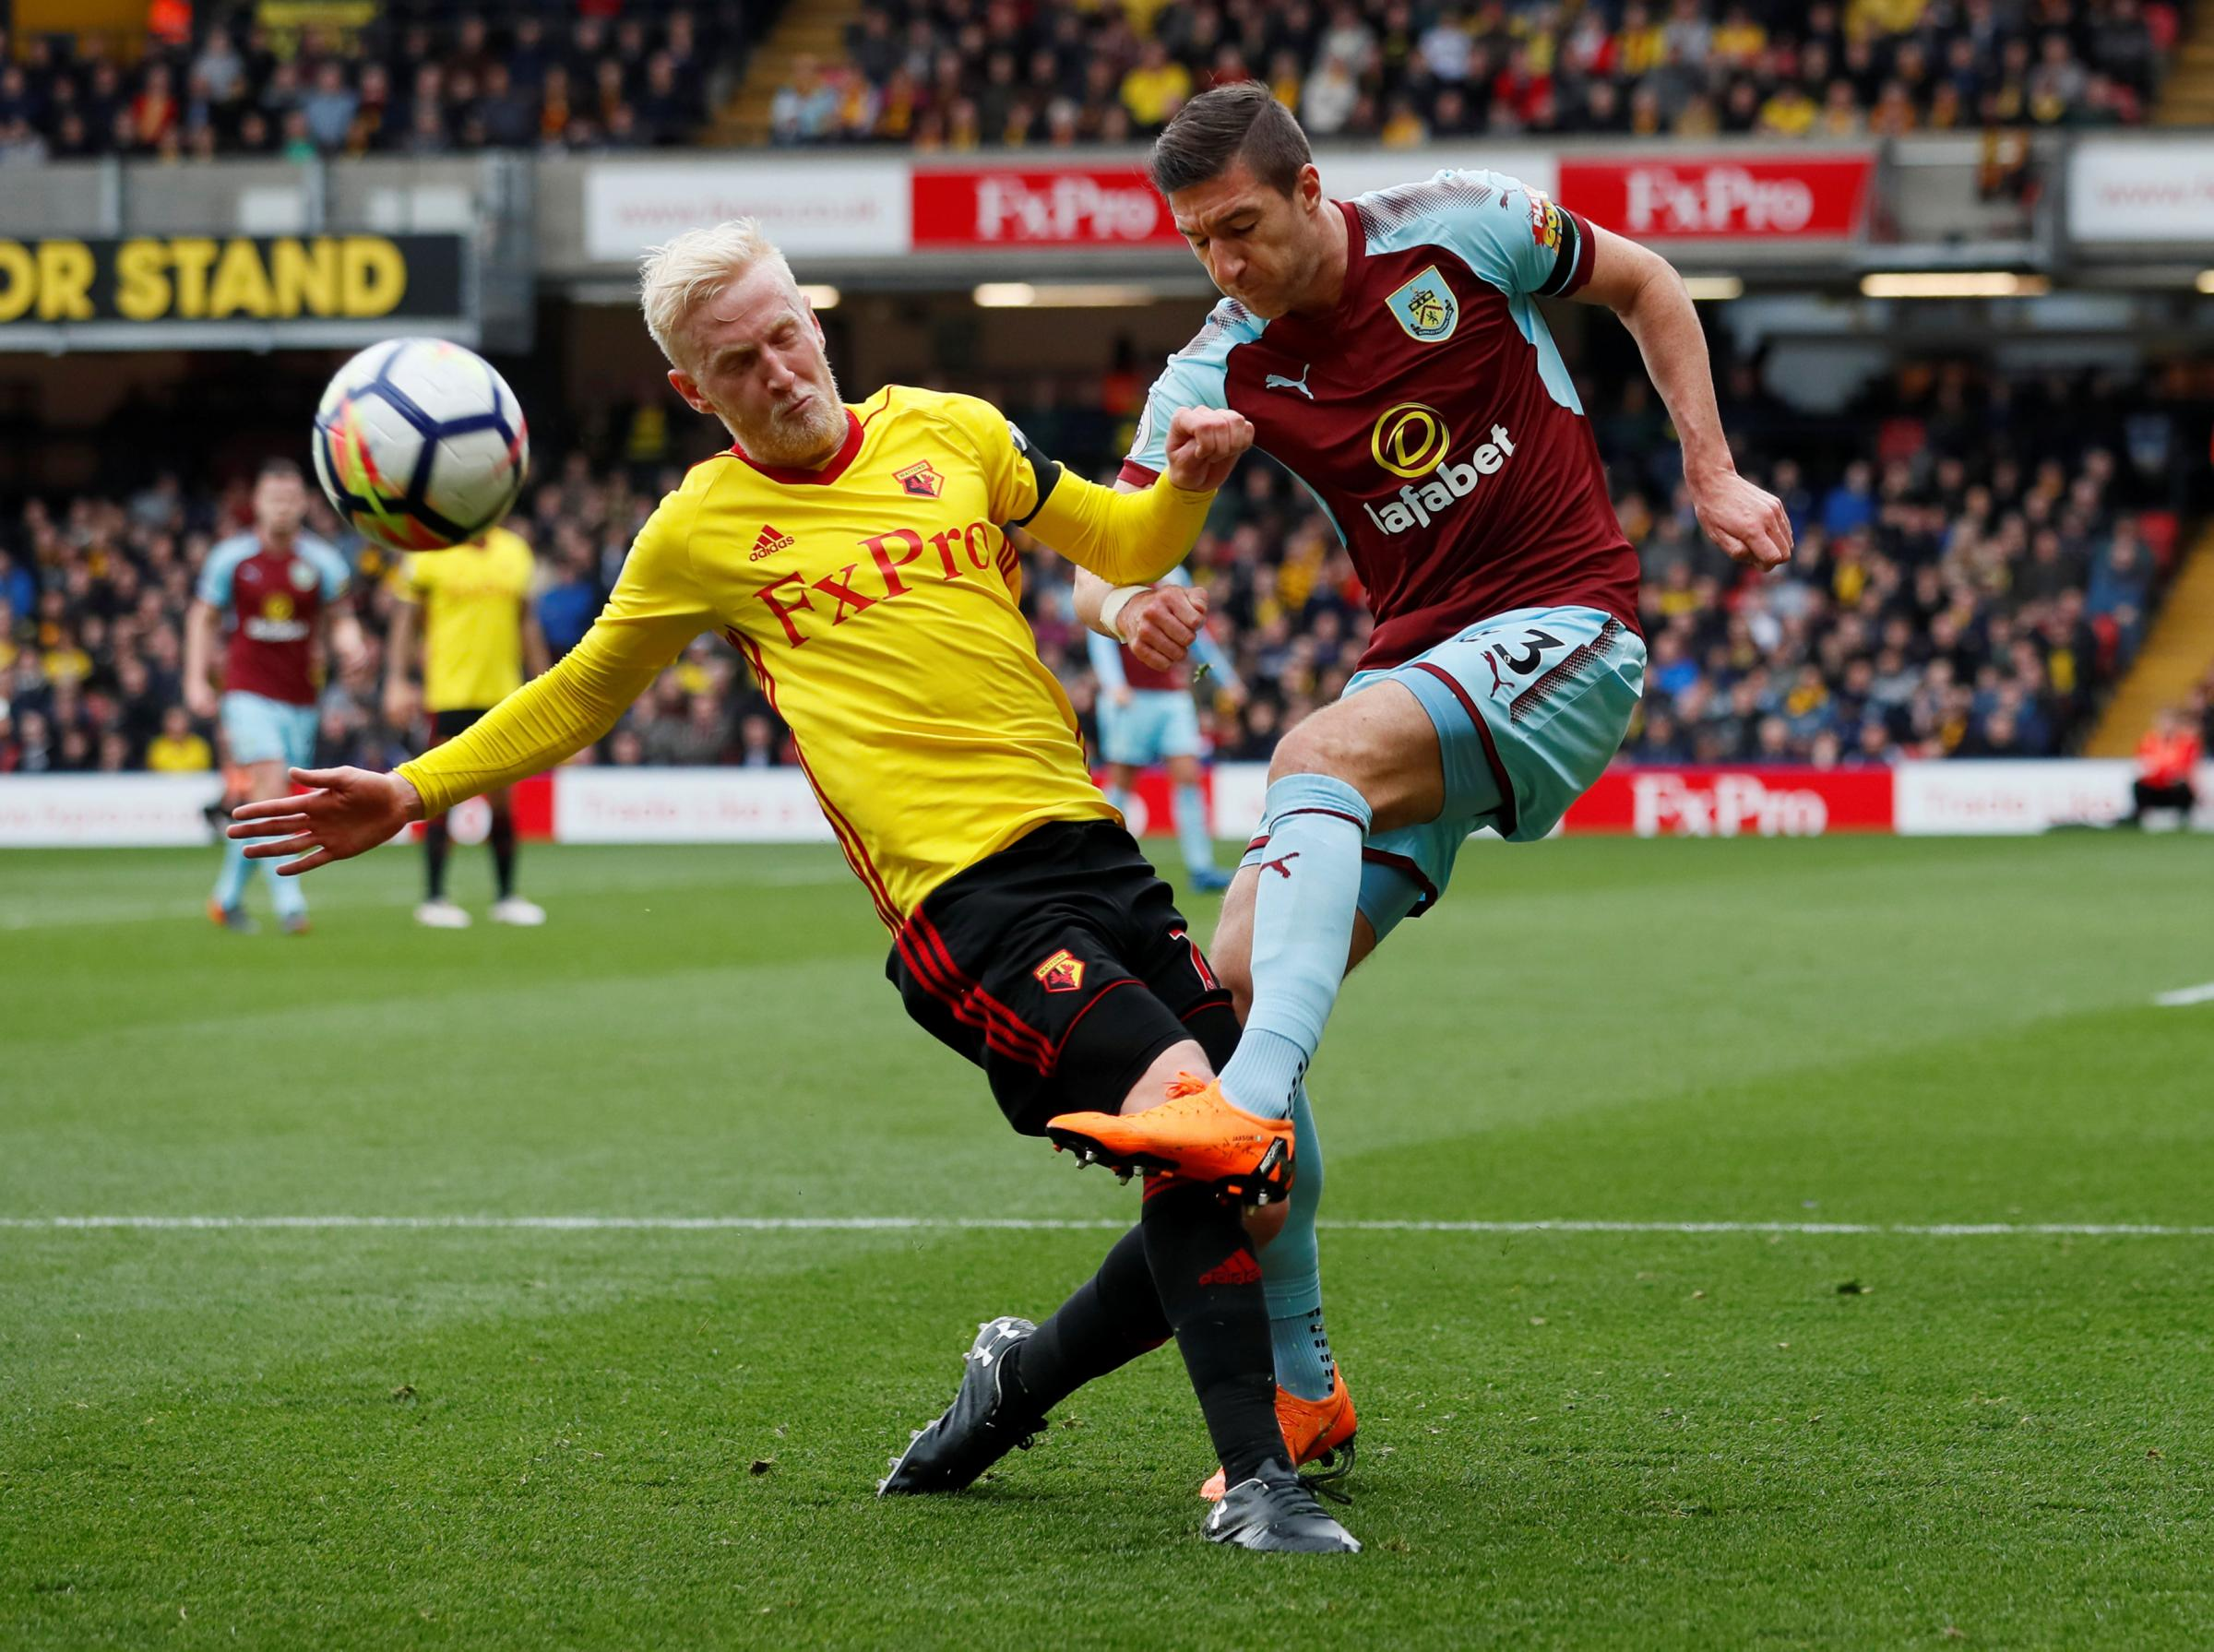 Will Hughes spent three months out with a hamstring injury, but has impressed since his return to fitness. Picture: Action Images